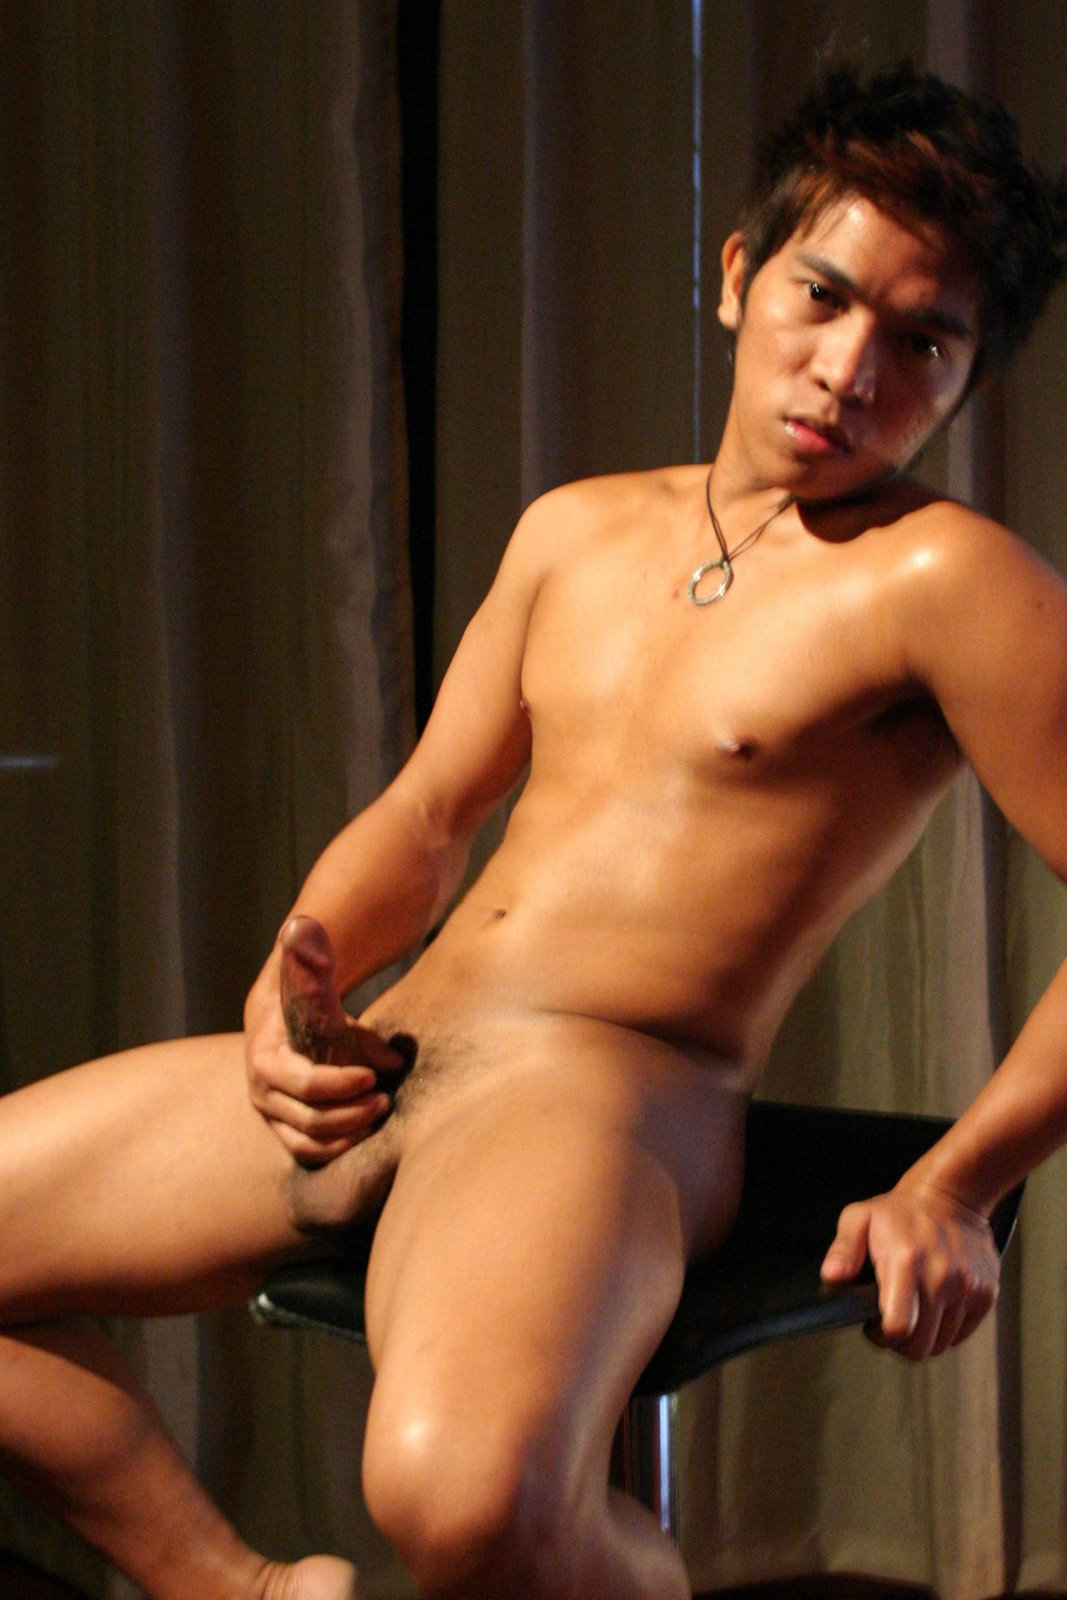 Male Teen Nude Photos